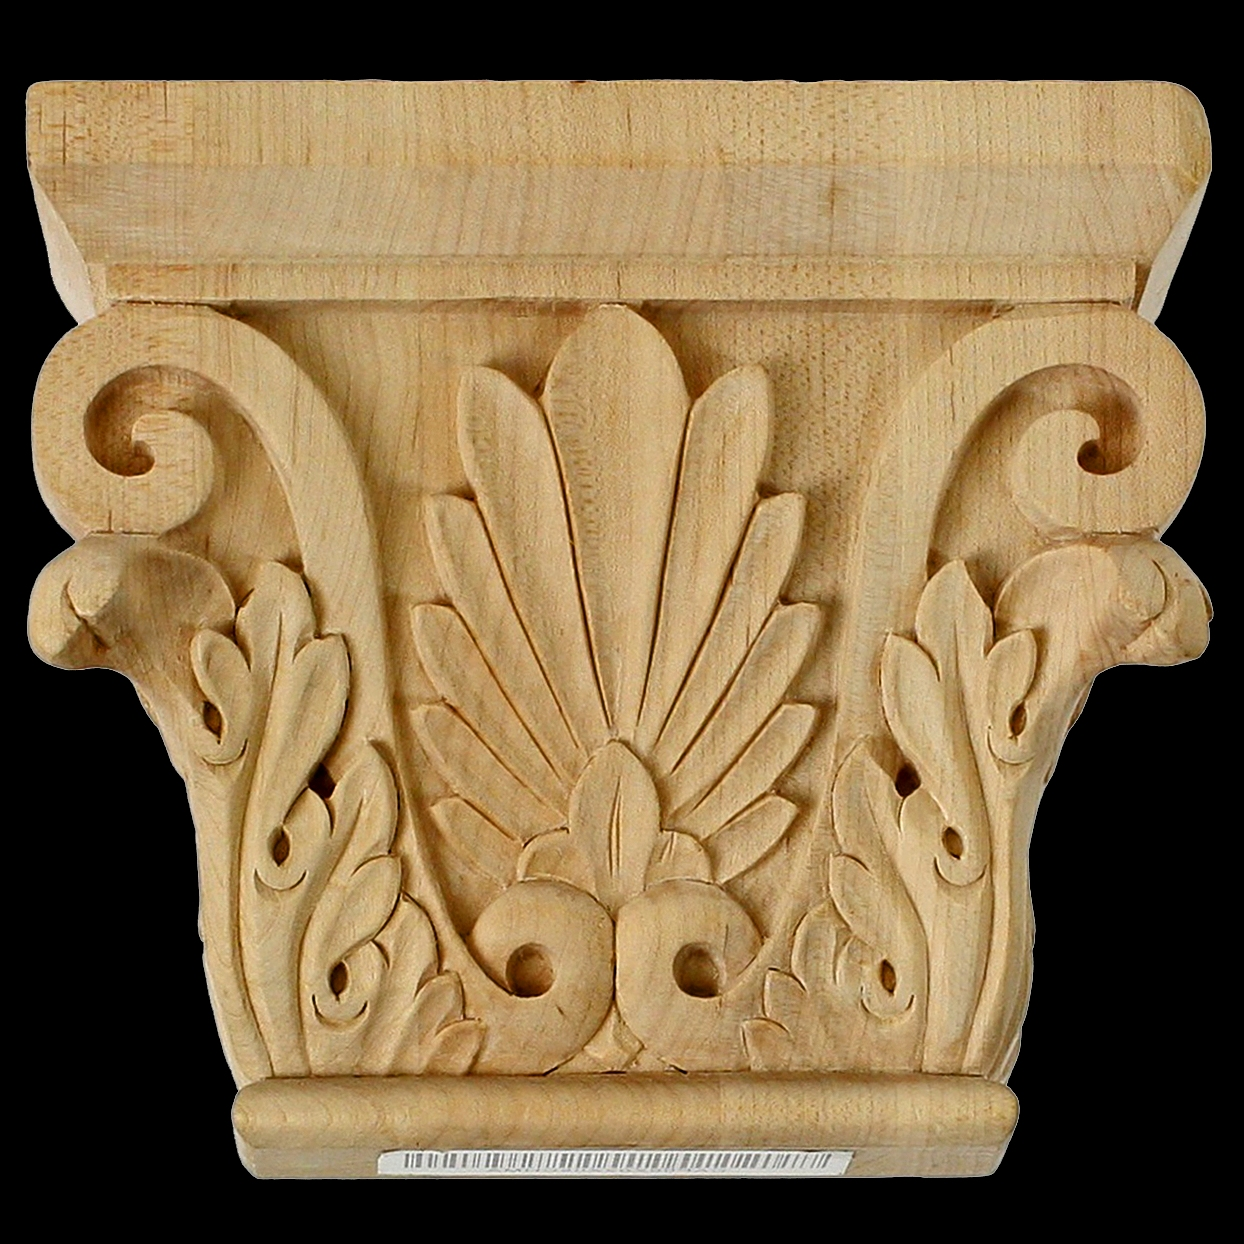 Wood Carving Designs For Beginners Woodideas